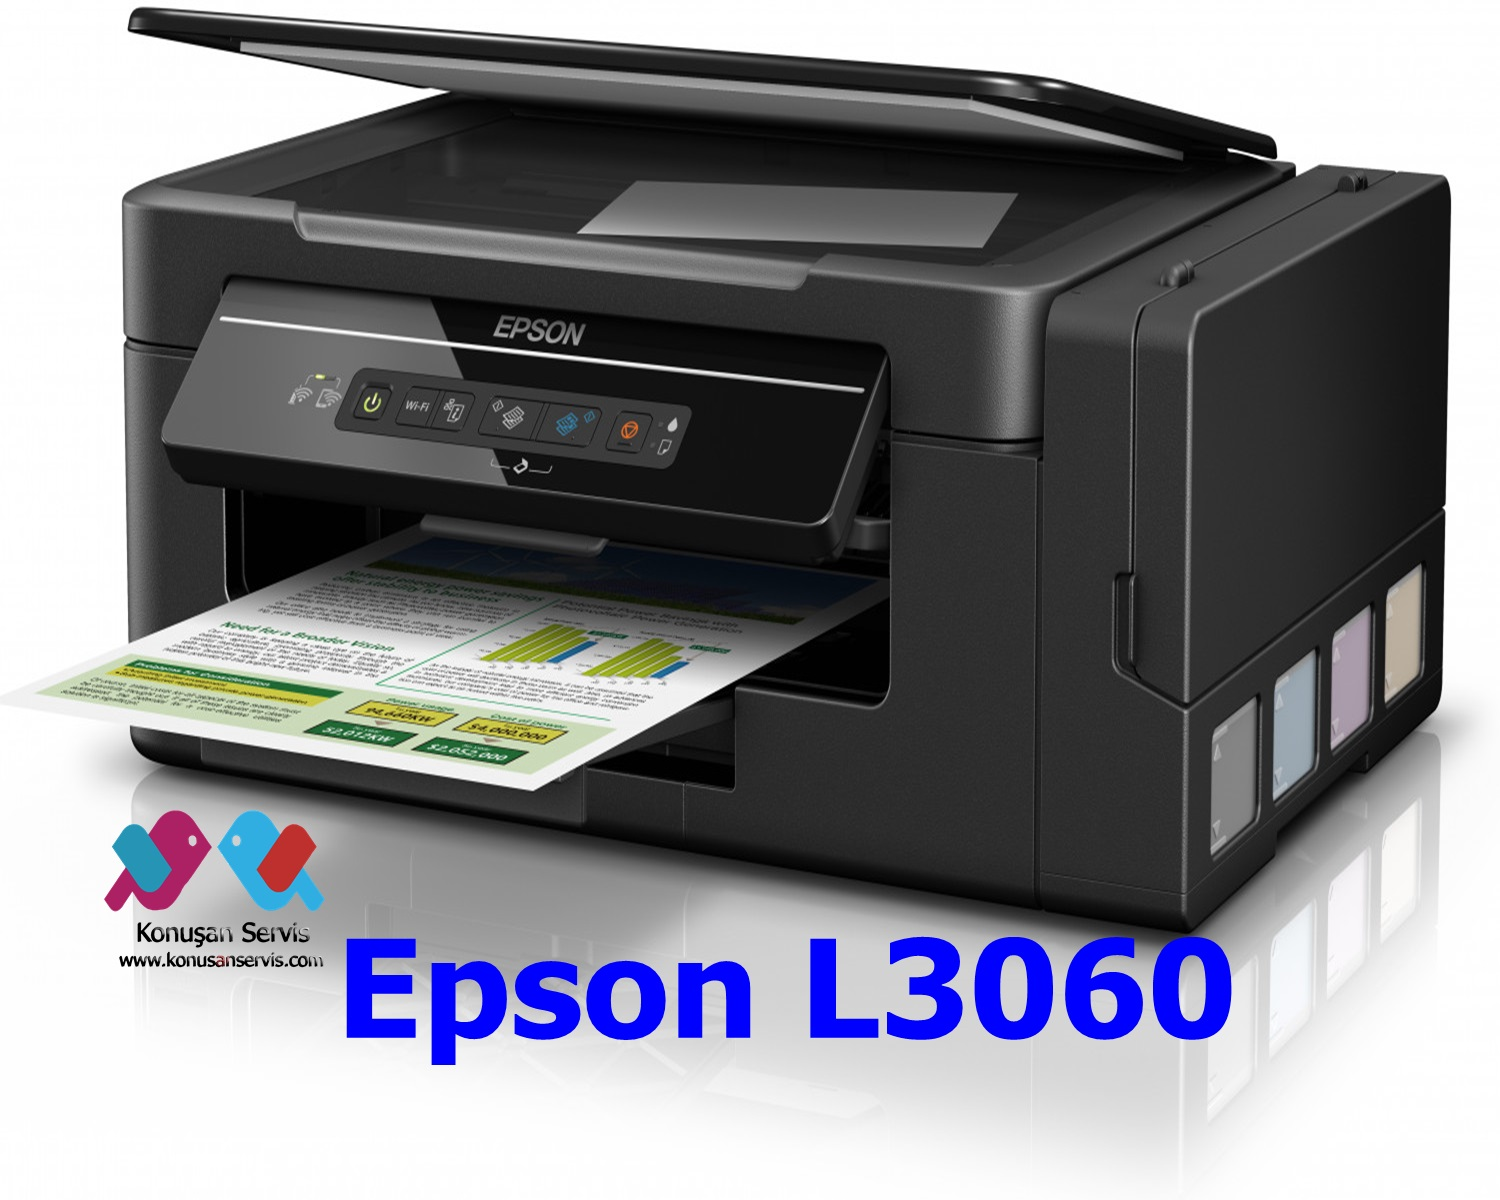 Epson L3060 Windows 10 32 Bit Full Driver